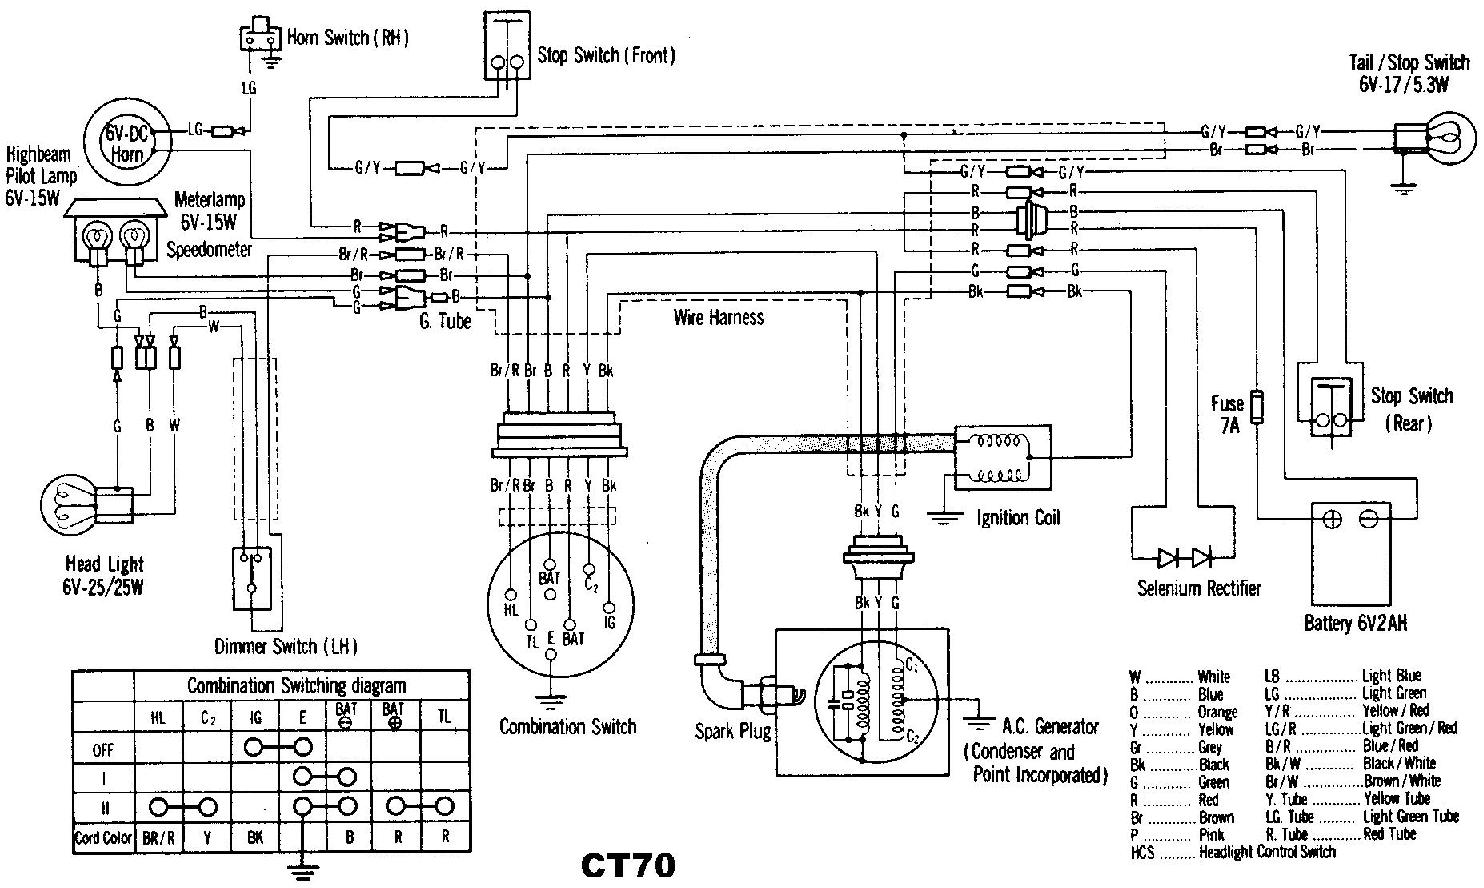 dratv_2269_123803613 honda trail 70 wiring diagram honda ct90 wiring diagram \u2022 wiring 1981 honda ct70 wiring diagram at readyjetset.co